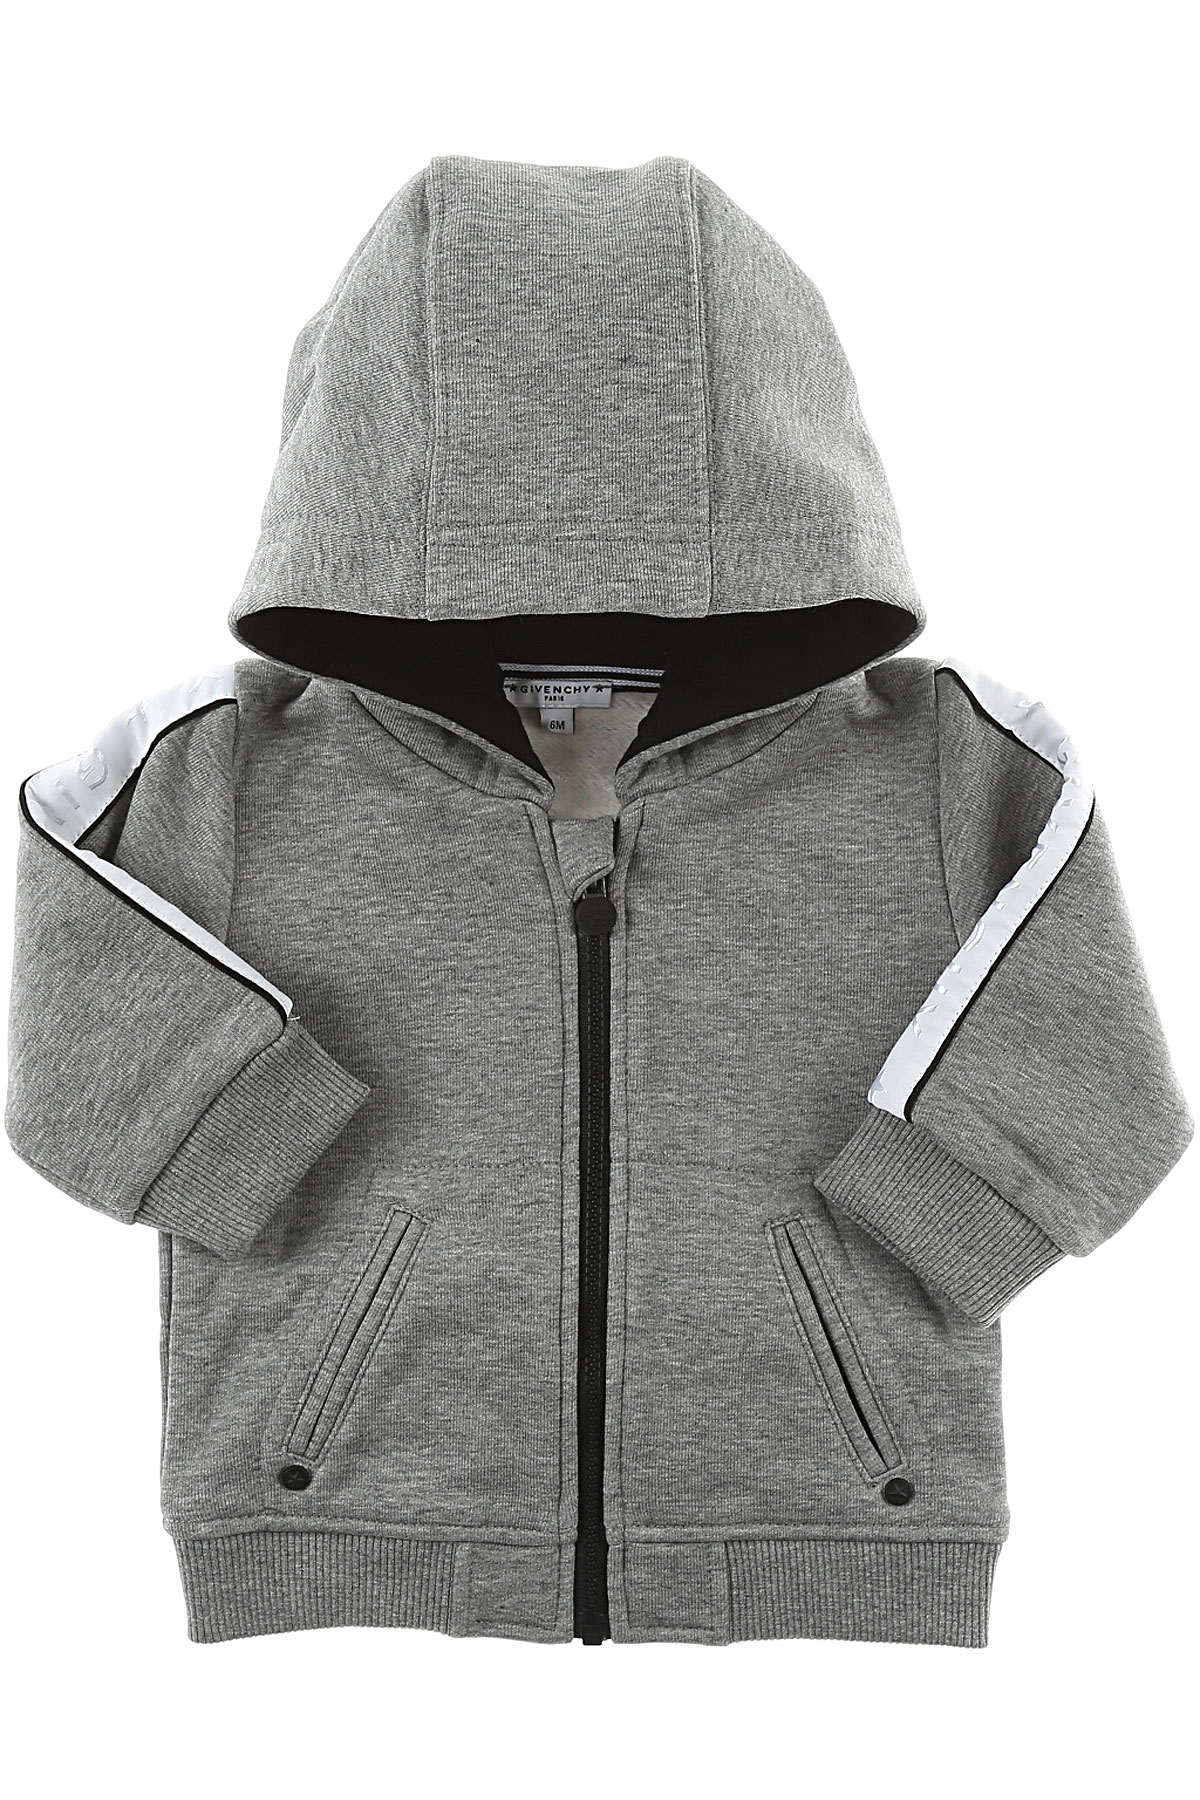 Image of Givenchy Baby Sweatshirts & Hoodies for Boys, Grey, Cotton, 2017, 12M 18M 3Y 6M 9M